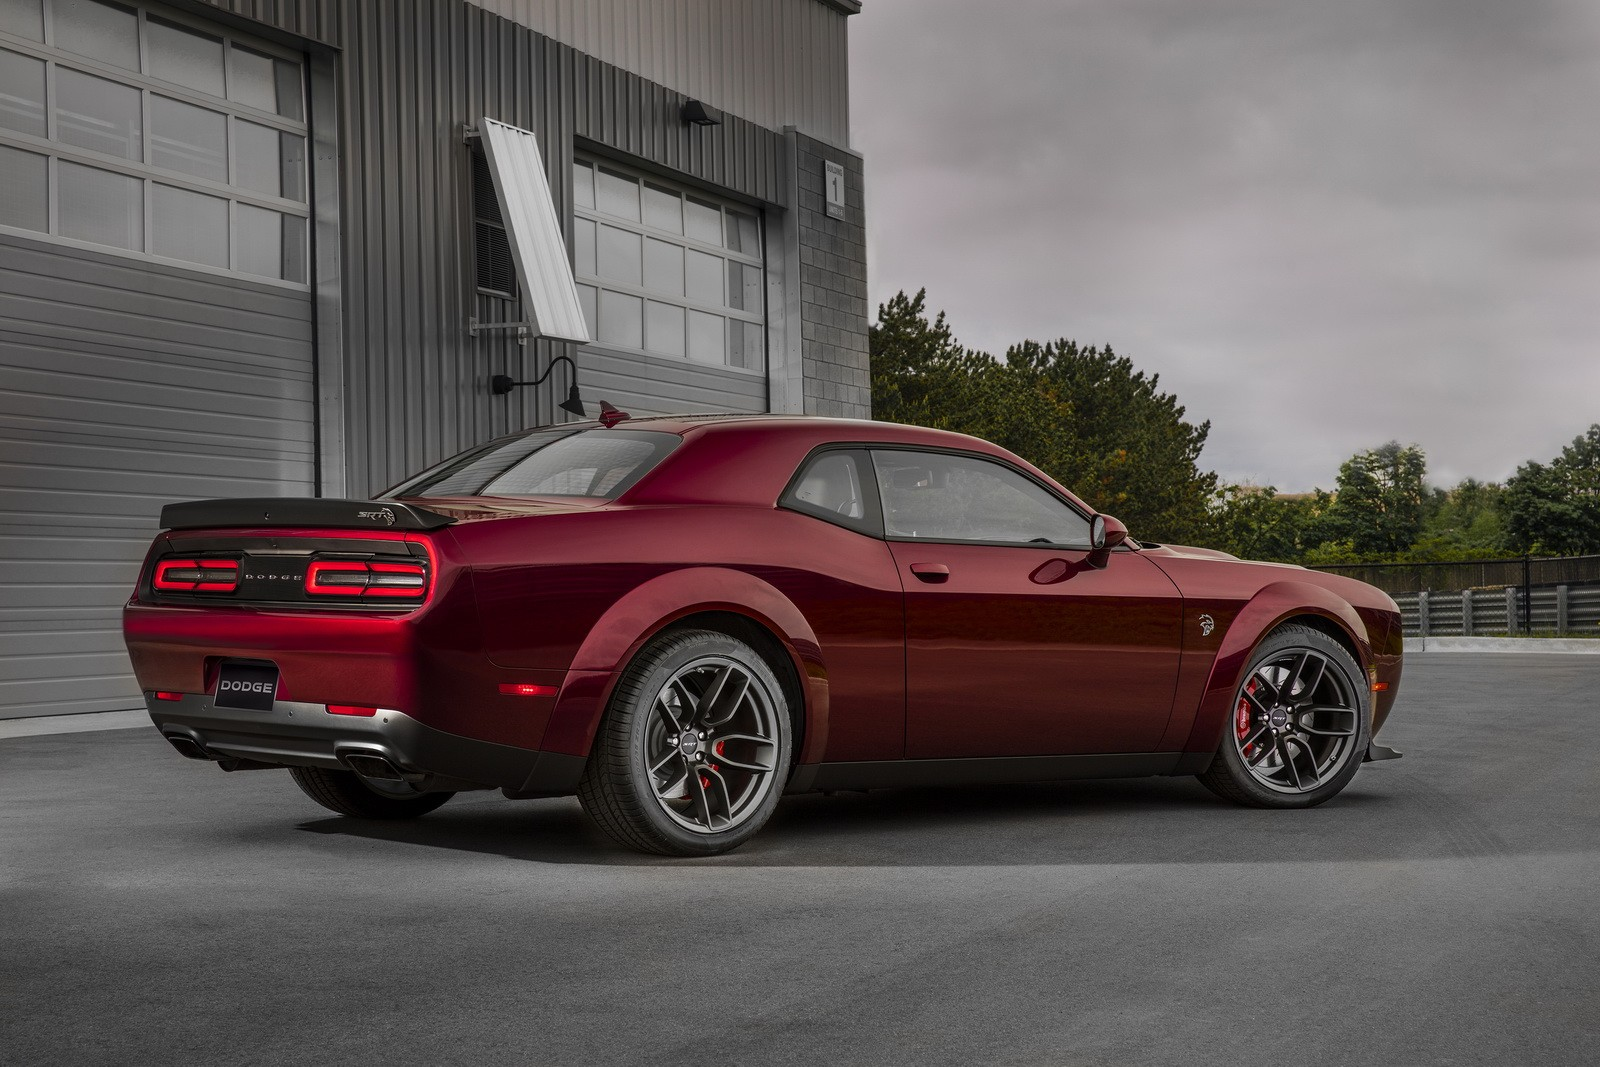 dodge reveals 2018 challenger srt hellcat widebody with demon inspired look autoevolution. Black Bedroom Furniture Sets. Home Design Ideas